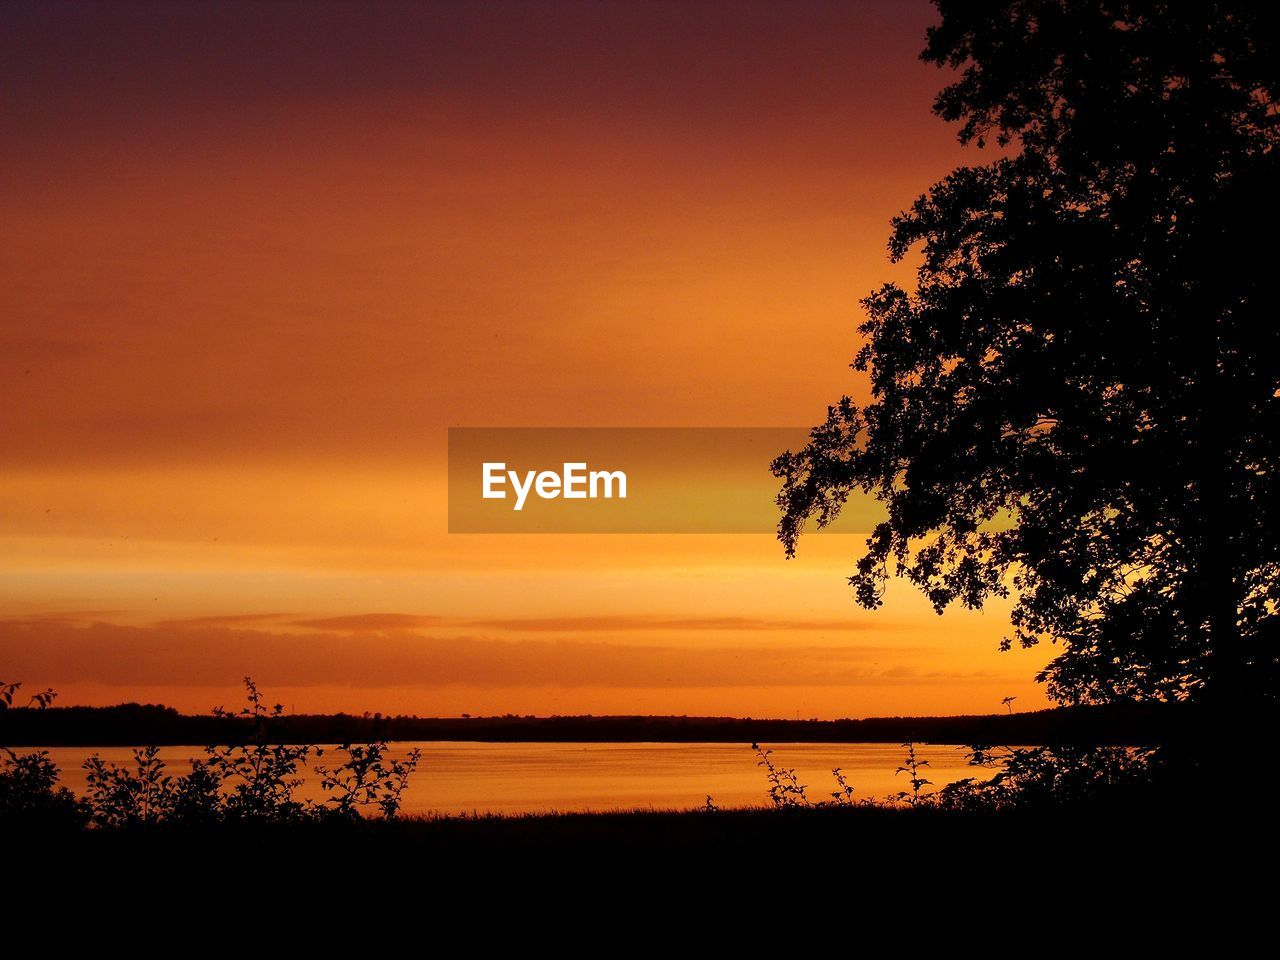 sunset, sky, beauty in nature, scenics - nature, tranquility, silhouette, orange color, tranquil scene, tree, plant, idyllic, water, nature, non-urban scene, no people, lake, cloud - sky, outdoors, dramatic sky, romantic sky